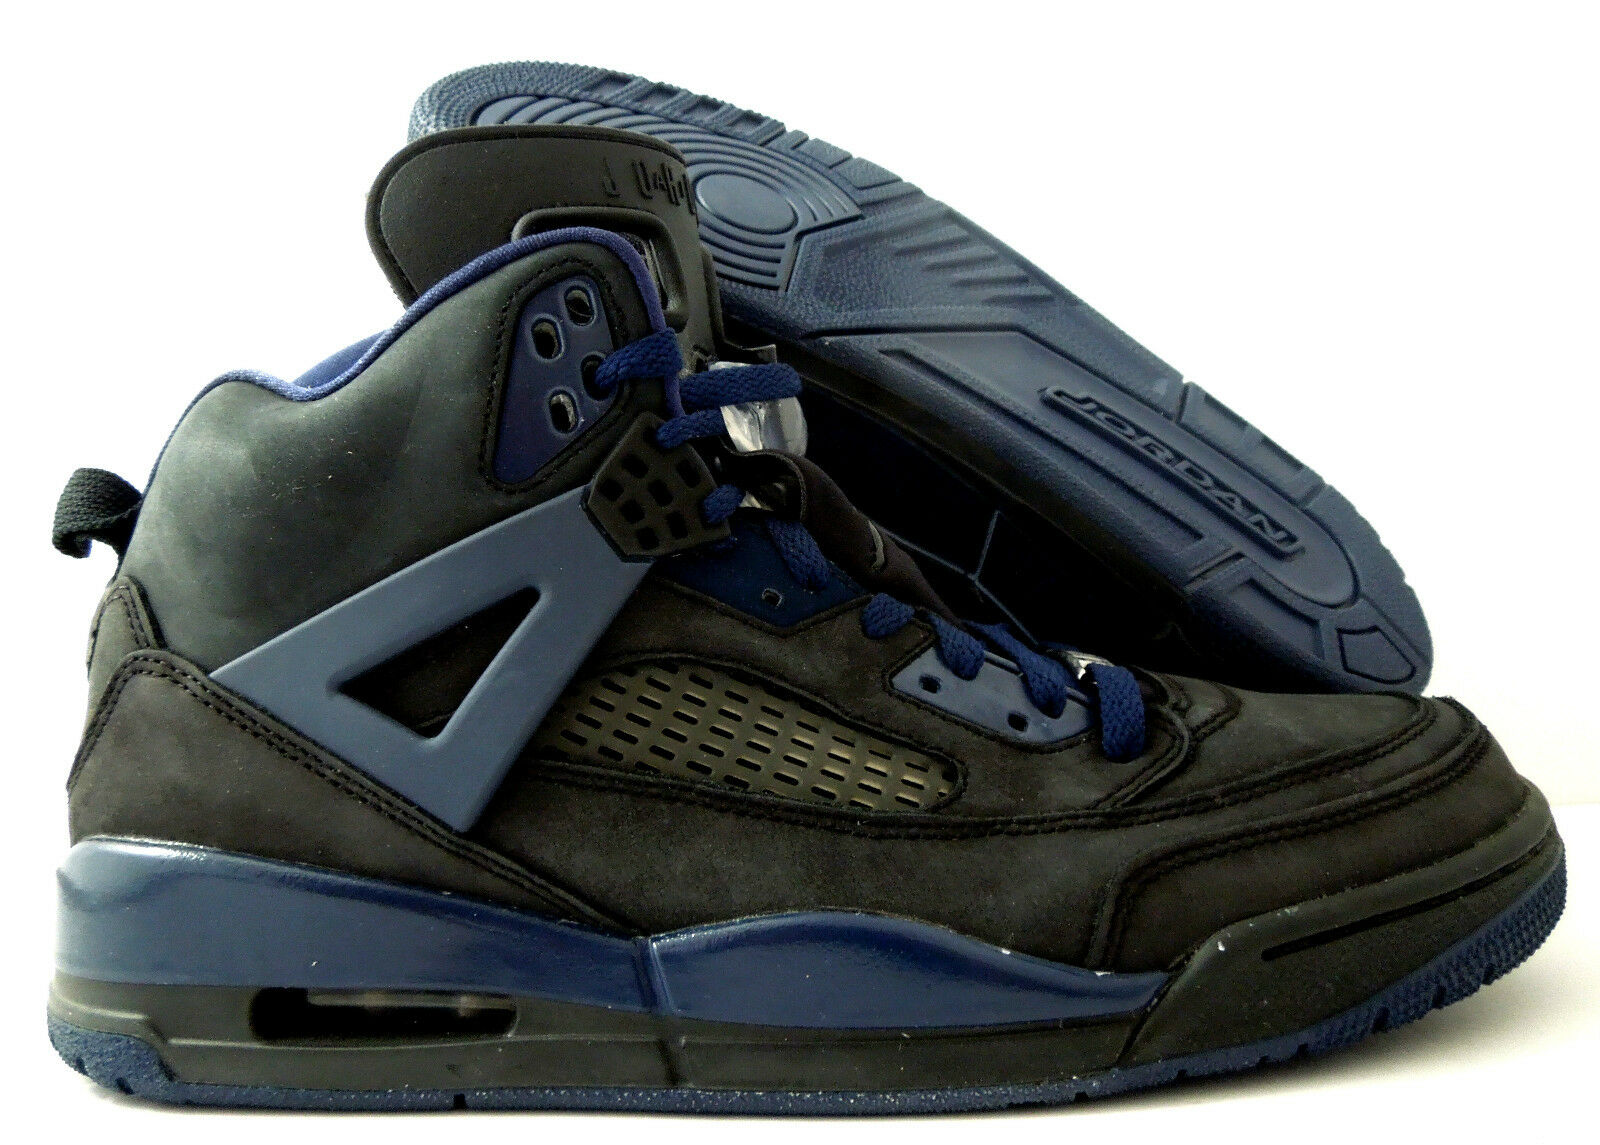 NIKE AIR JORDAN SPIZIKE iD BLACK-NAVY BLUE SZ 11 [605236-991]